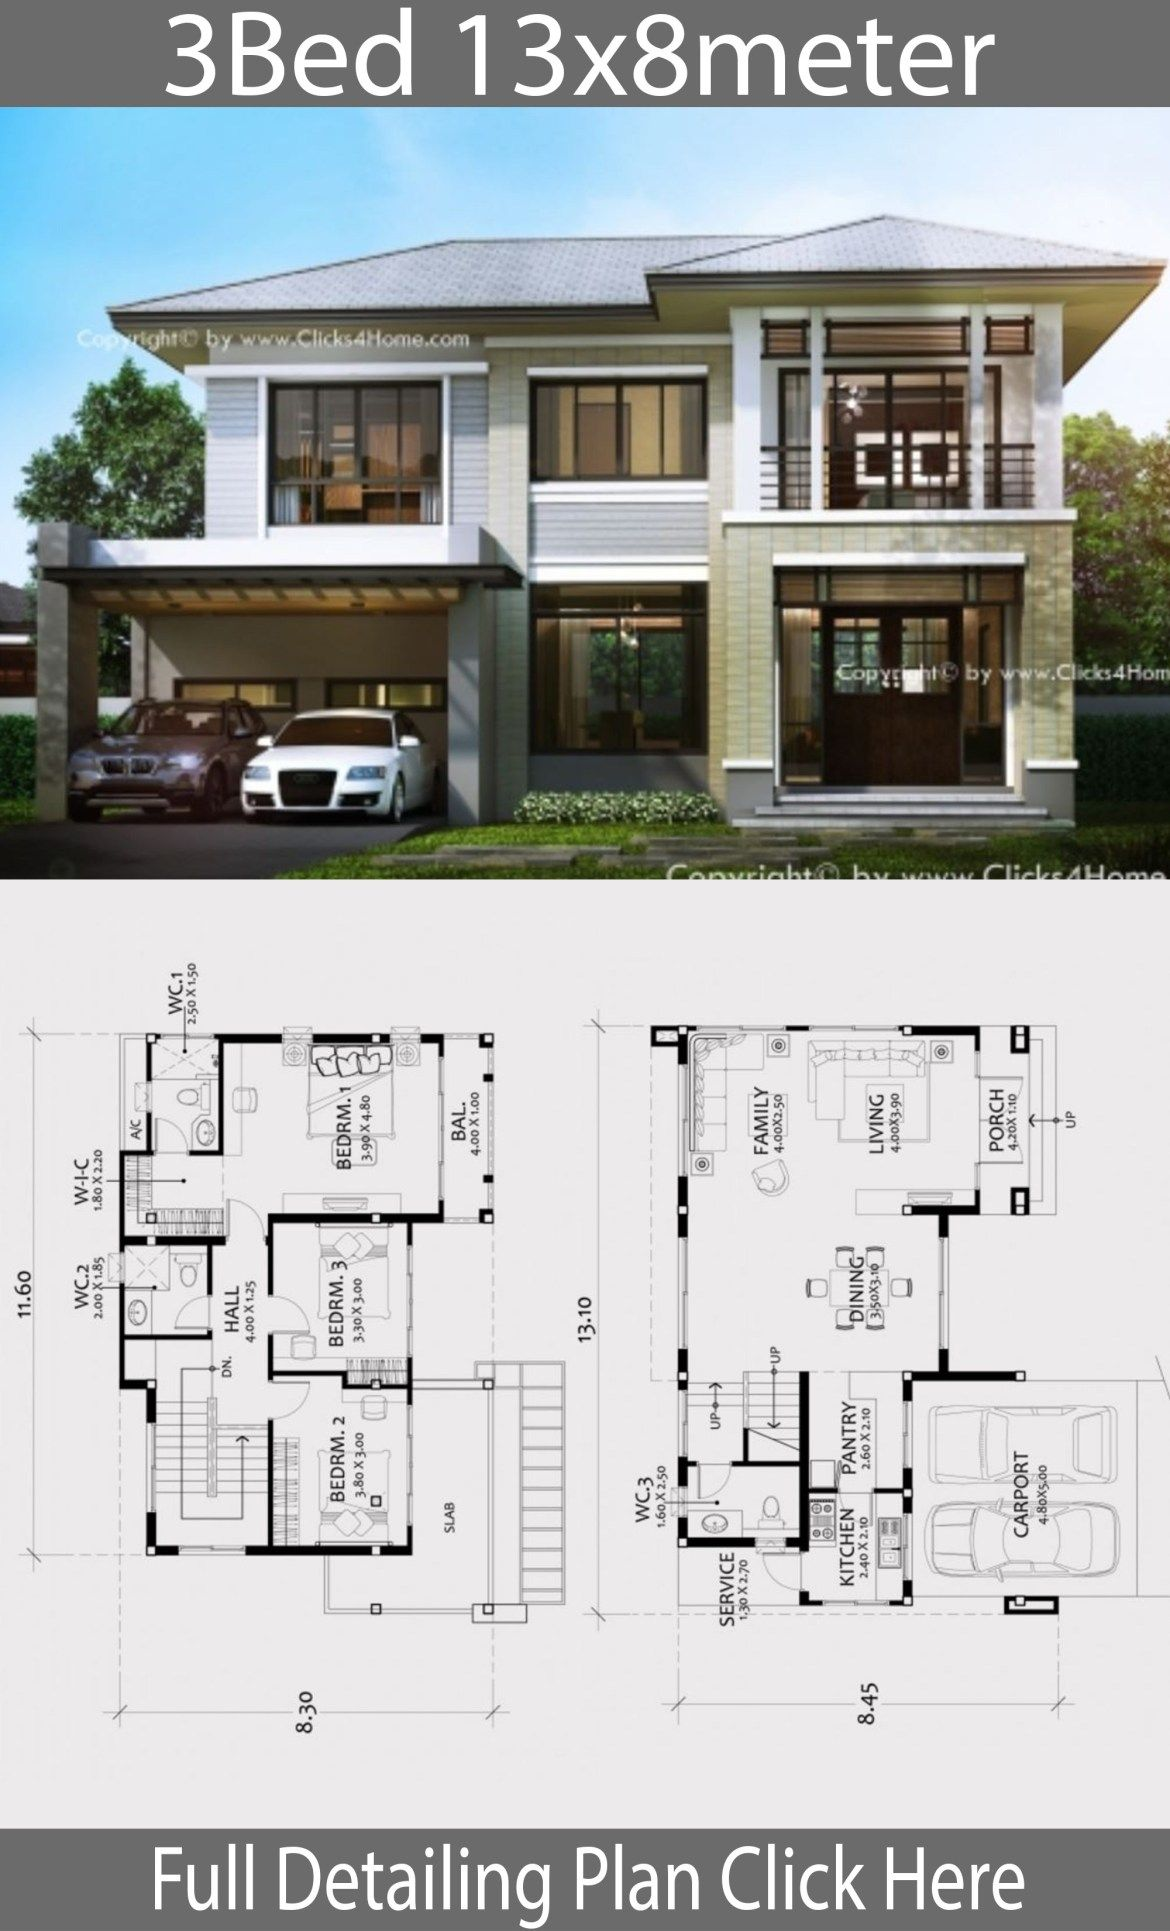 Home design plan 322x322m with 32 bedrooms   Home Design with ...